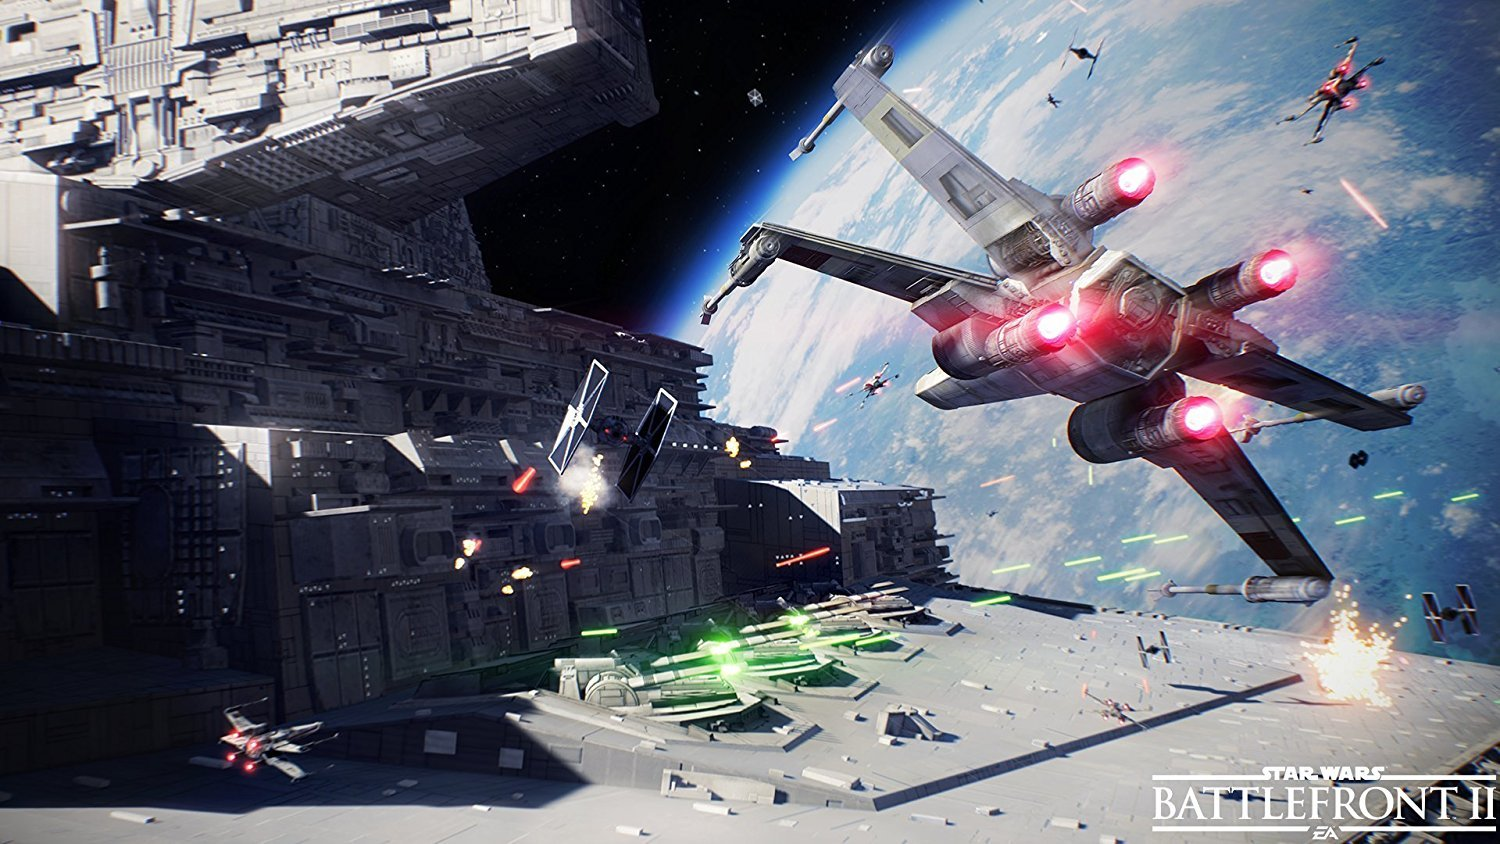 Star Wars: Battlefront II for PS4 image